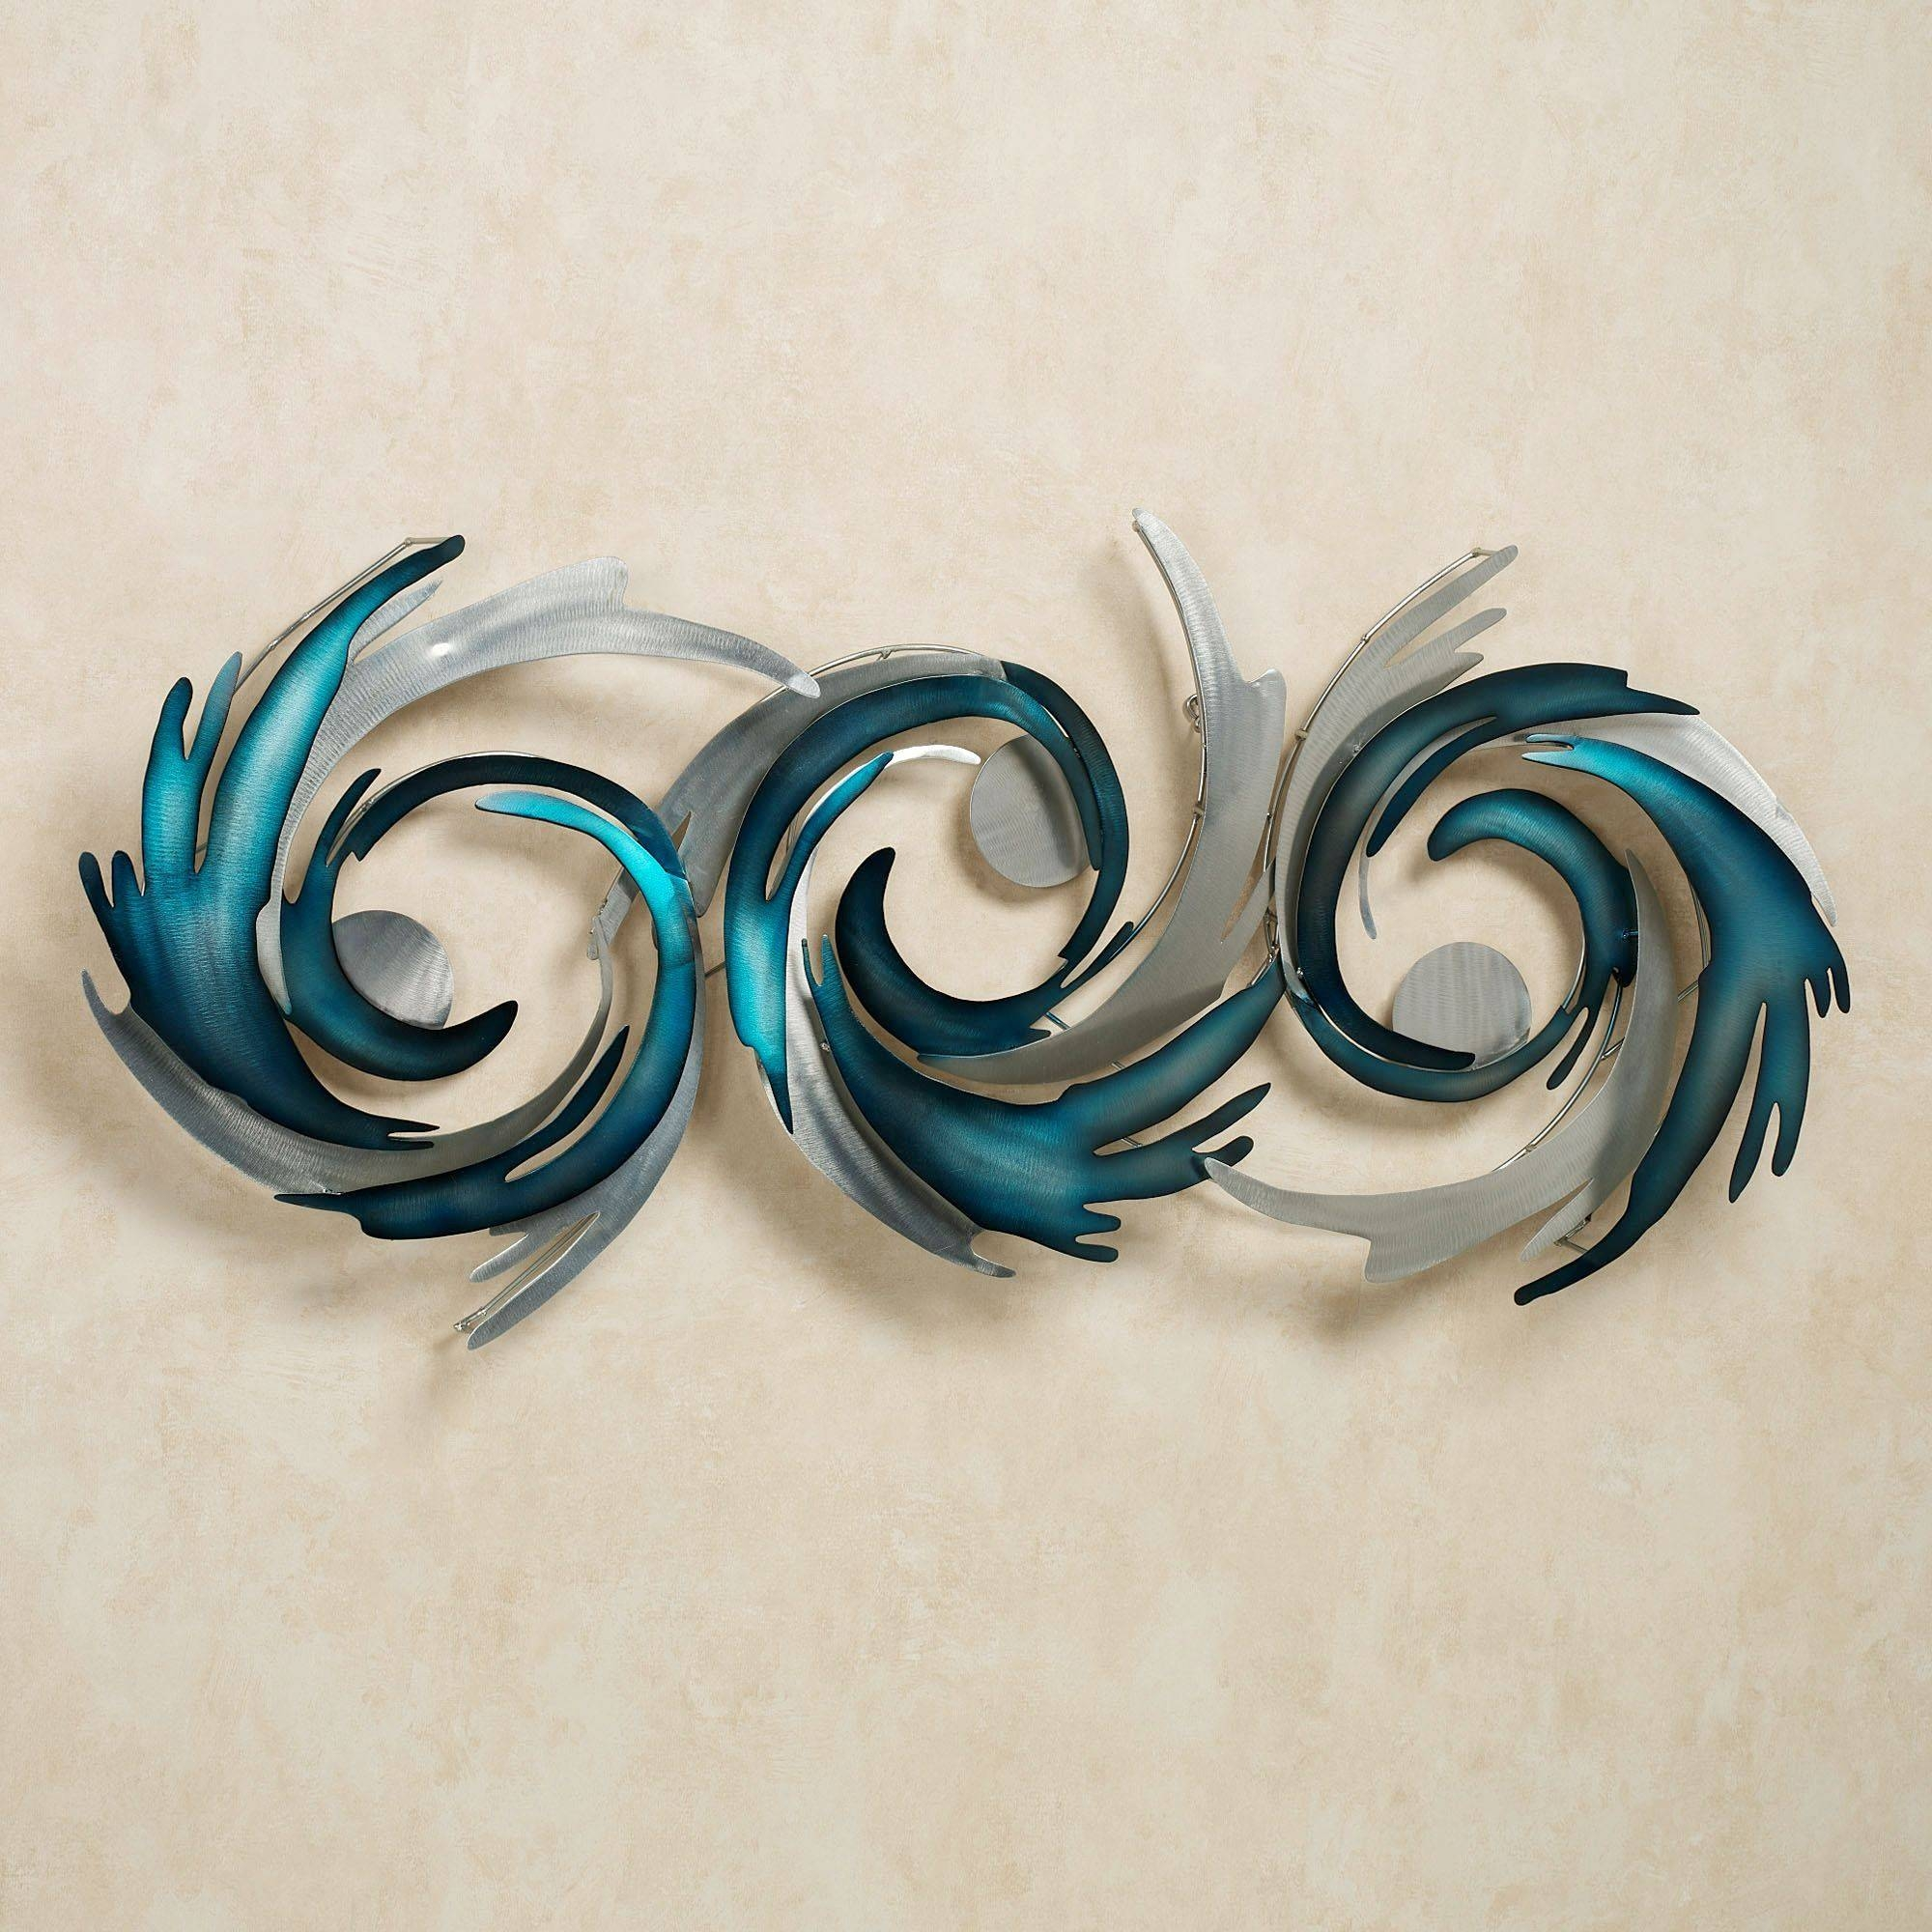 Metal Wall Art Sculptures | Touch Of Class With Regard To 2018 Circular Metal Wall Art (View 8 of 20)